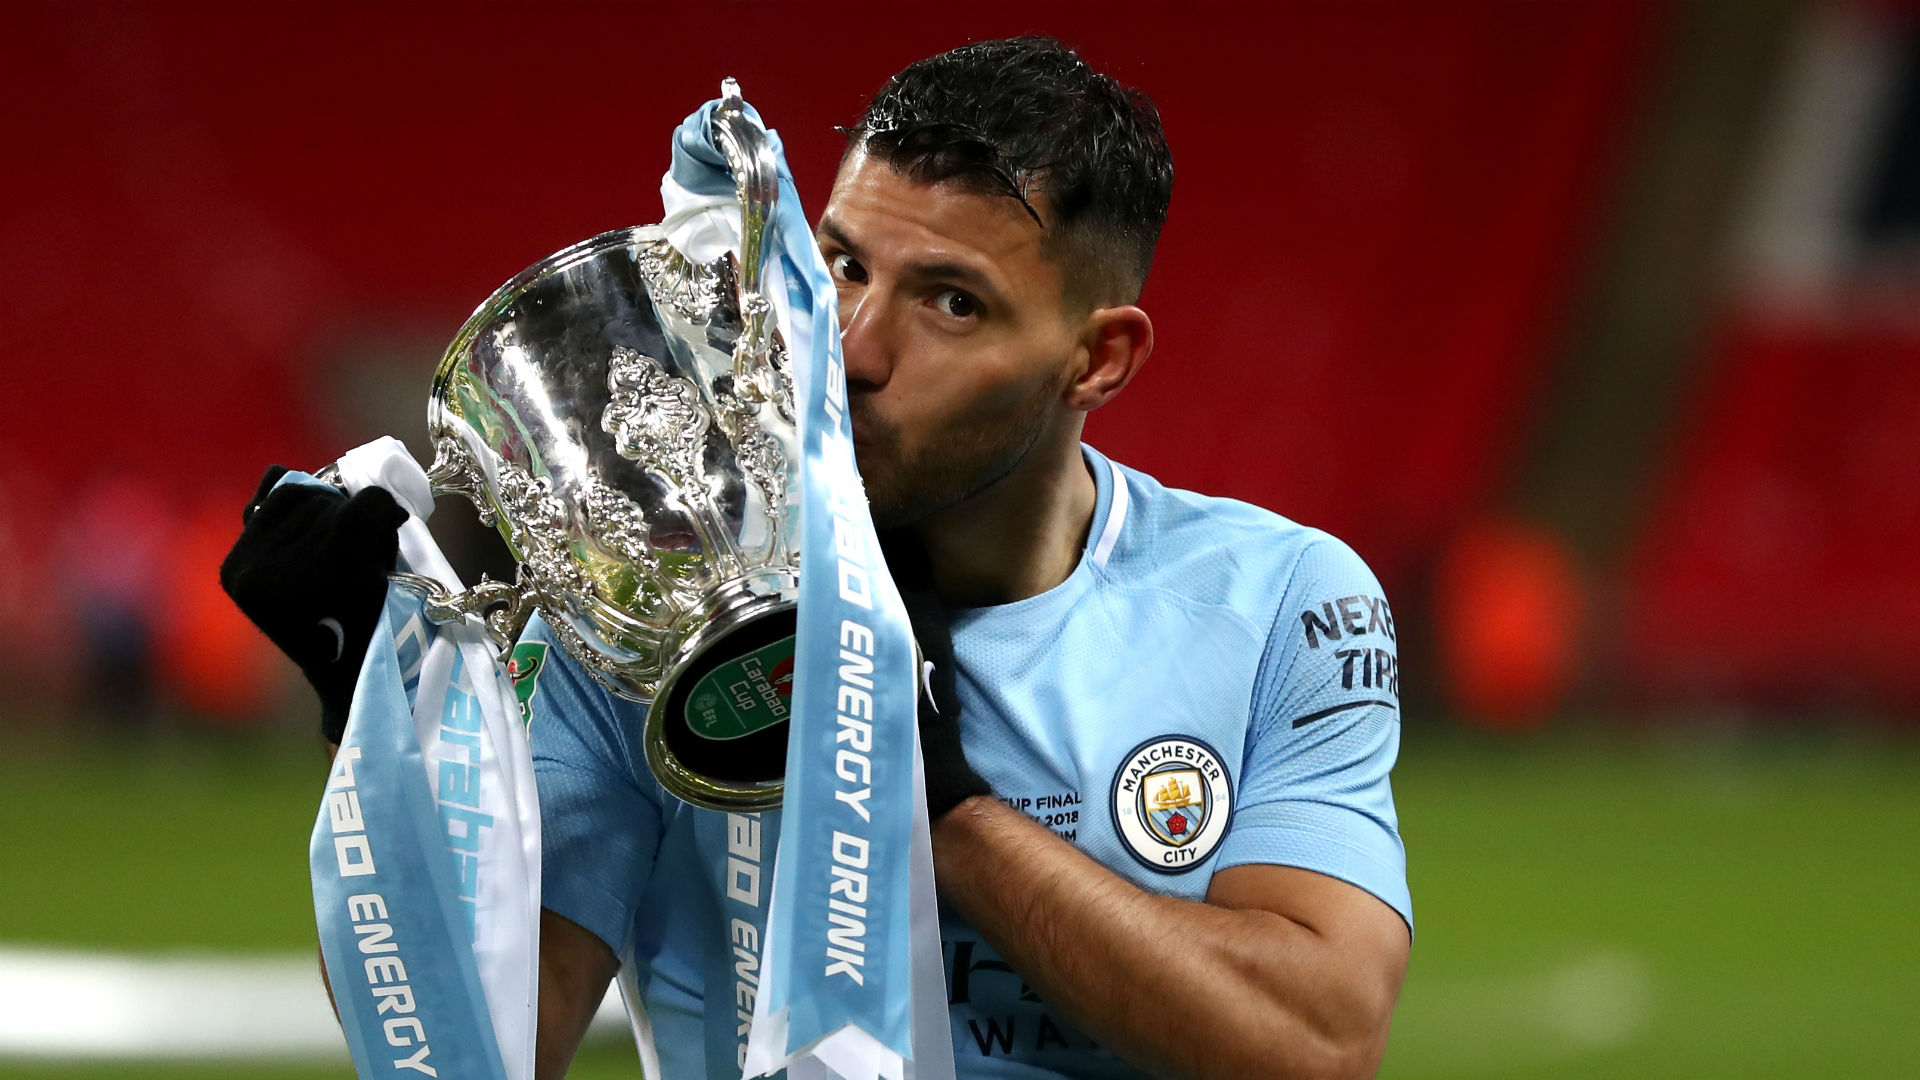 Carabao Cup 2019-20: Fixtures, teams, draw dates & all you need to know